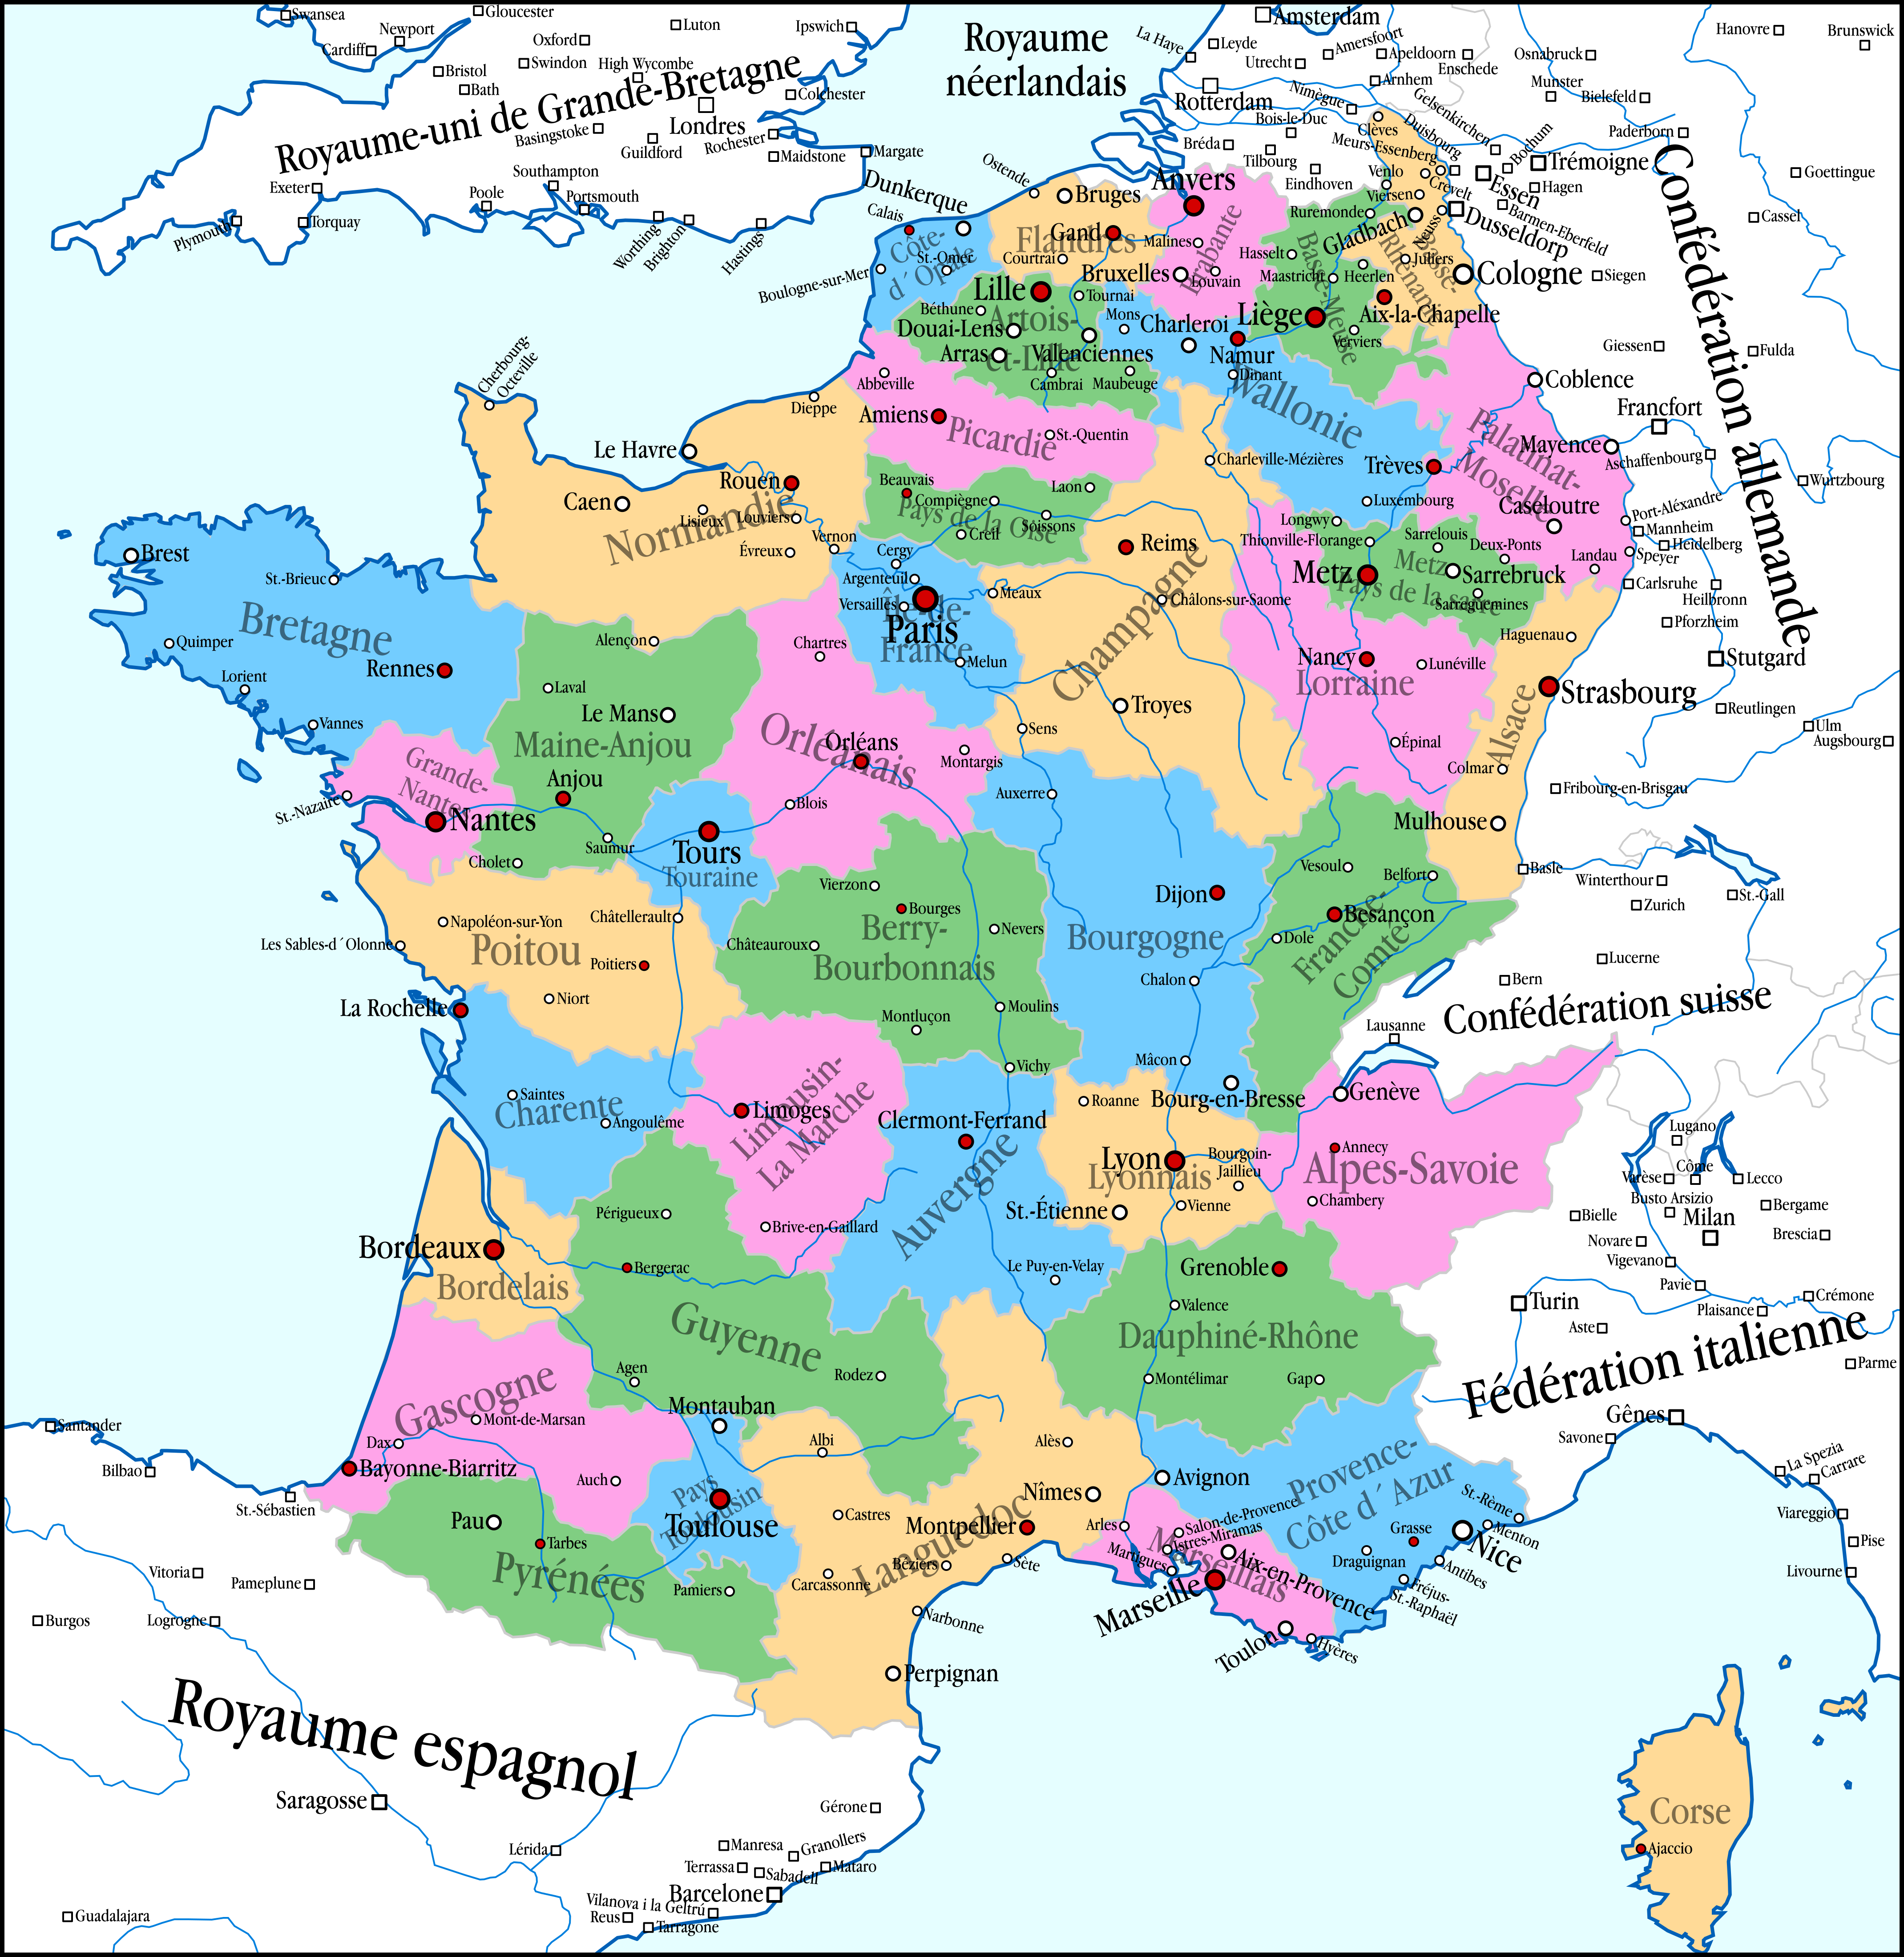 Alternate History Map France by banananaise on DeviantArt